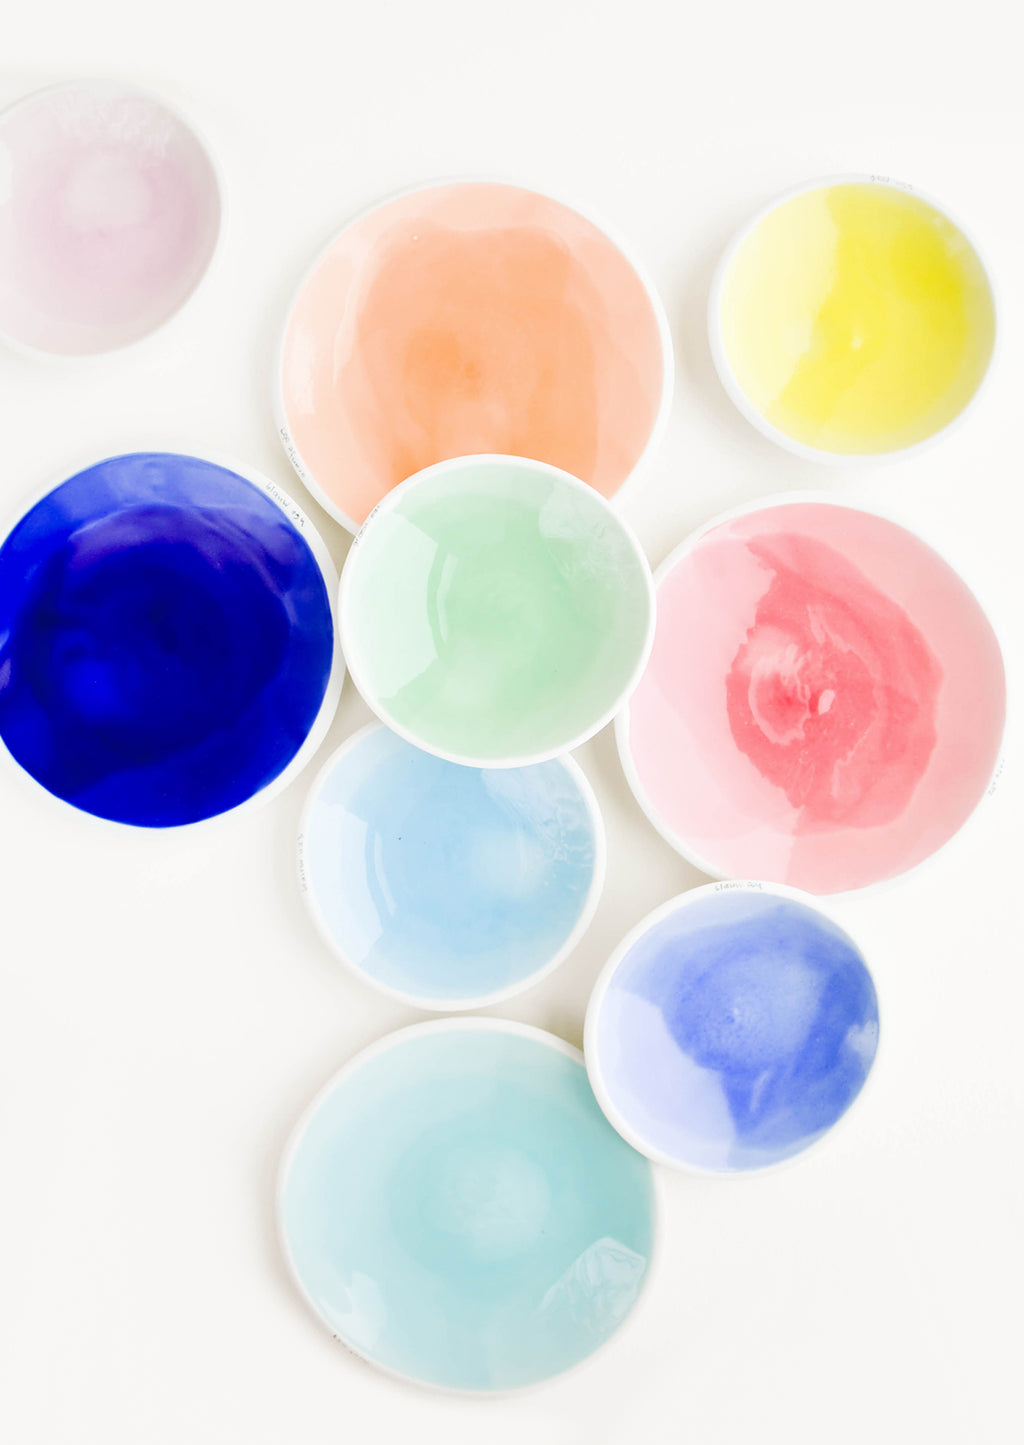 2: Many colorful porcelain dishes in two sizes.